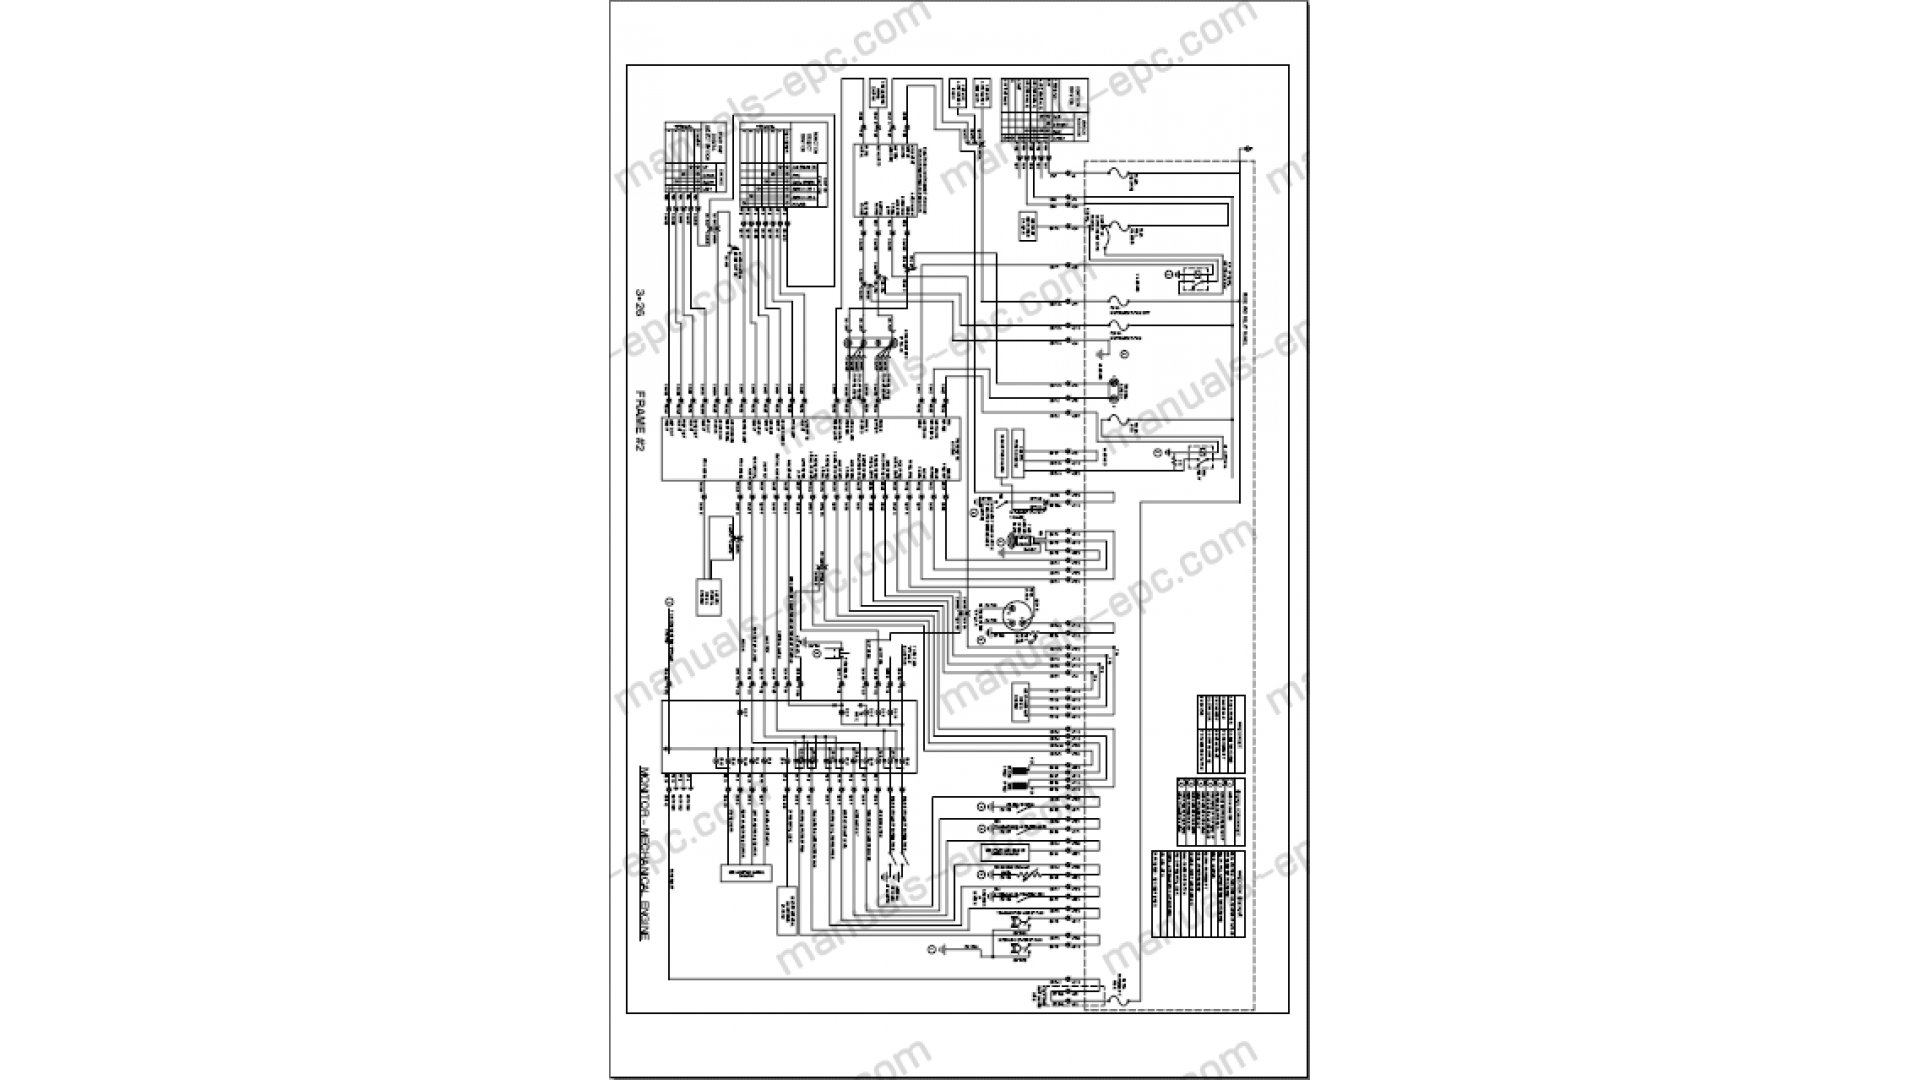 buhler versatile 2240, 2270, 2310, 2360, 2425 service manual international tractor wiring diagram